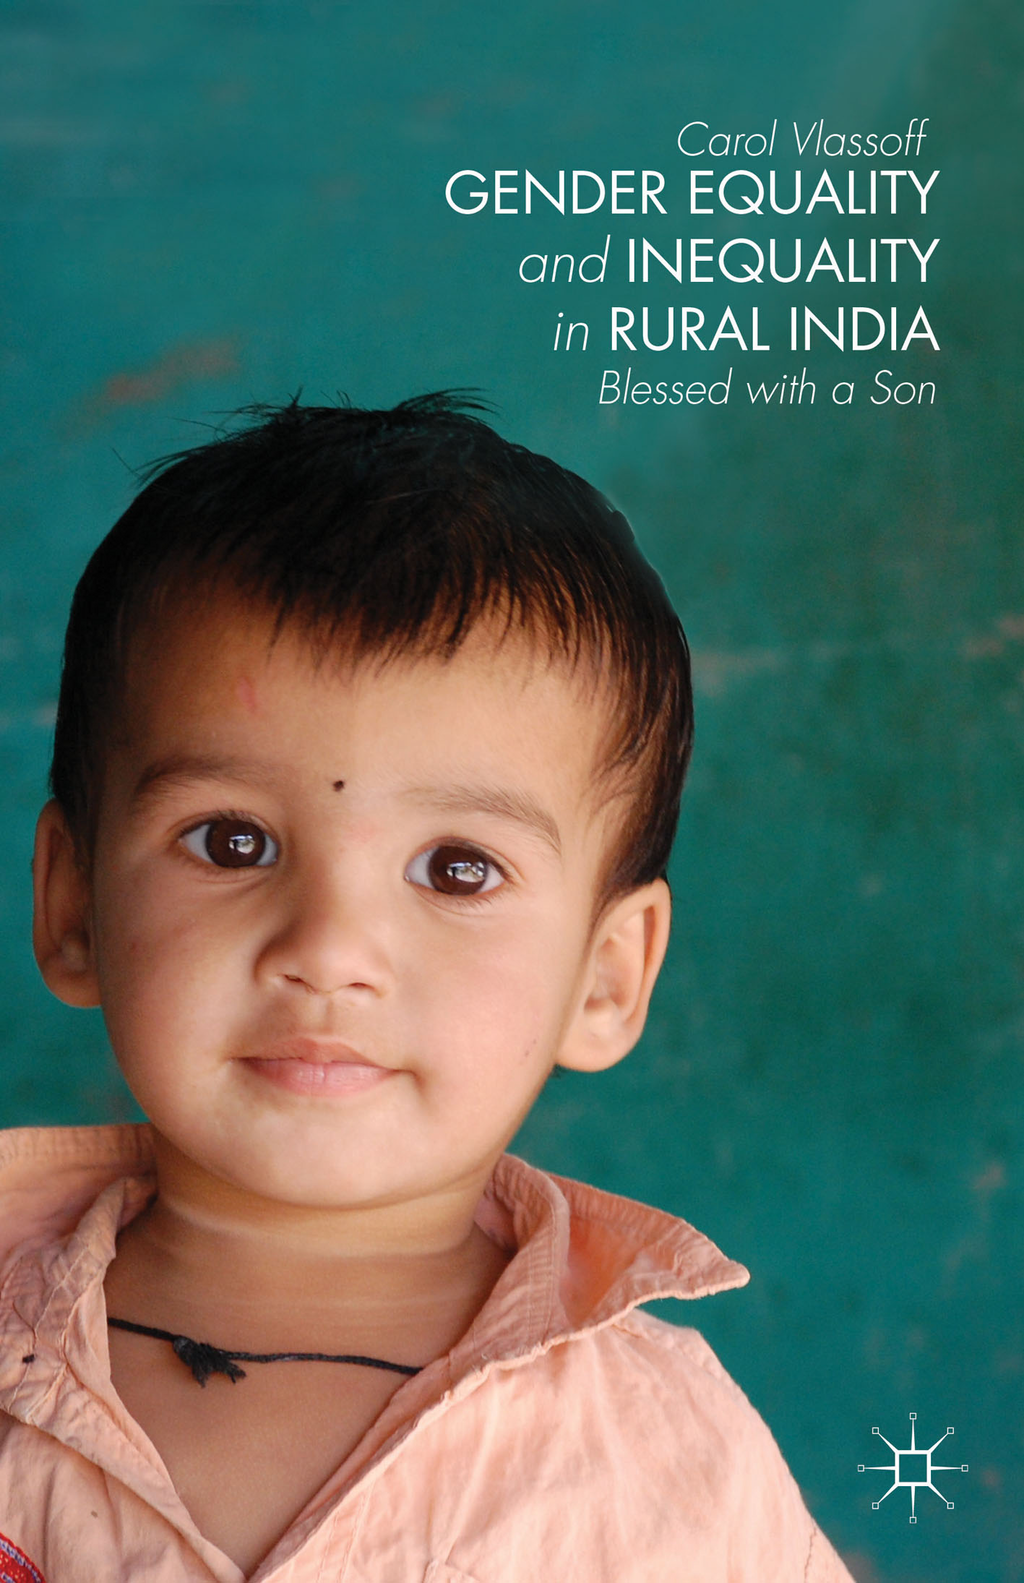 Gender Equality and Inequality in Rural India Blessed with a Son